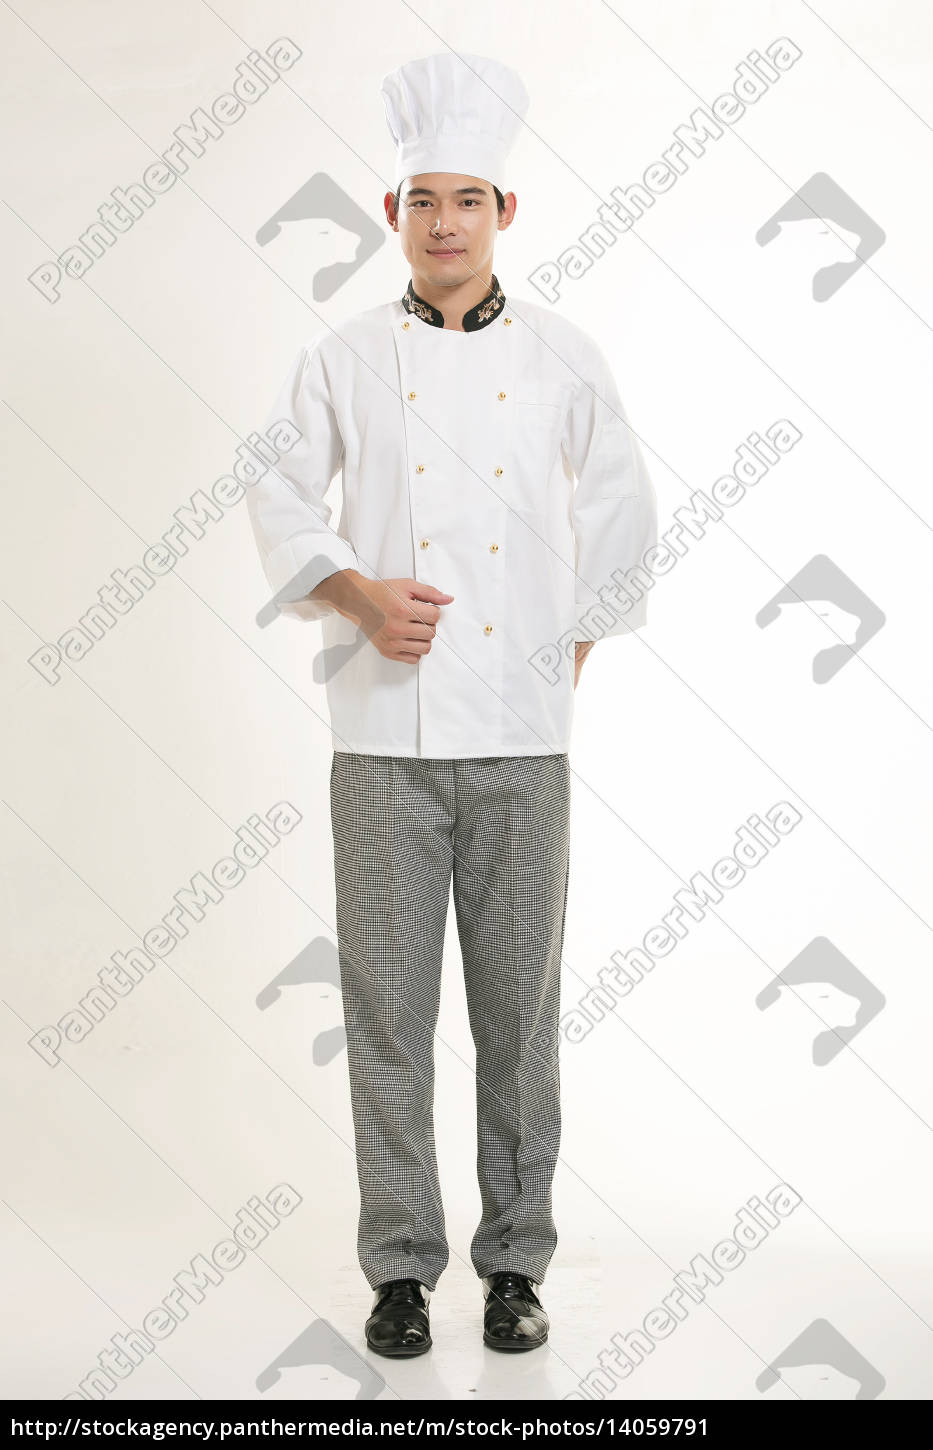 menu, cook, chef, baking, backdrop, background - 14059791